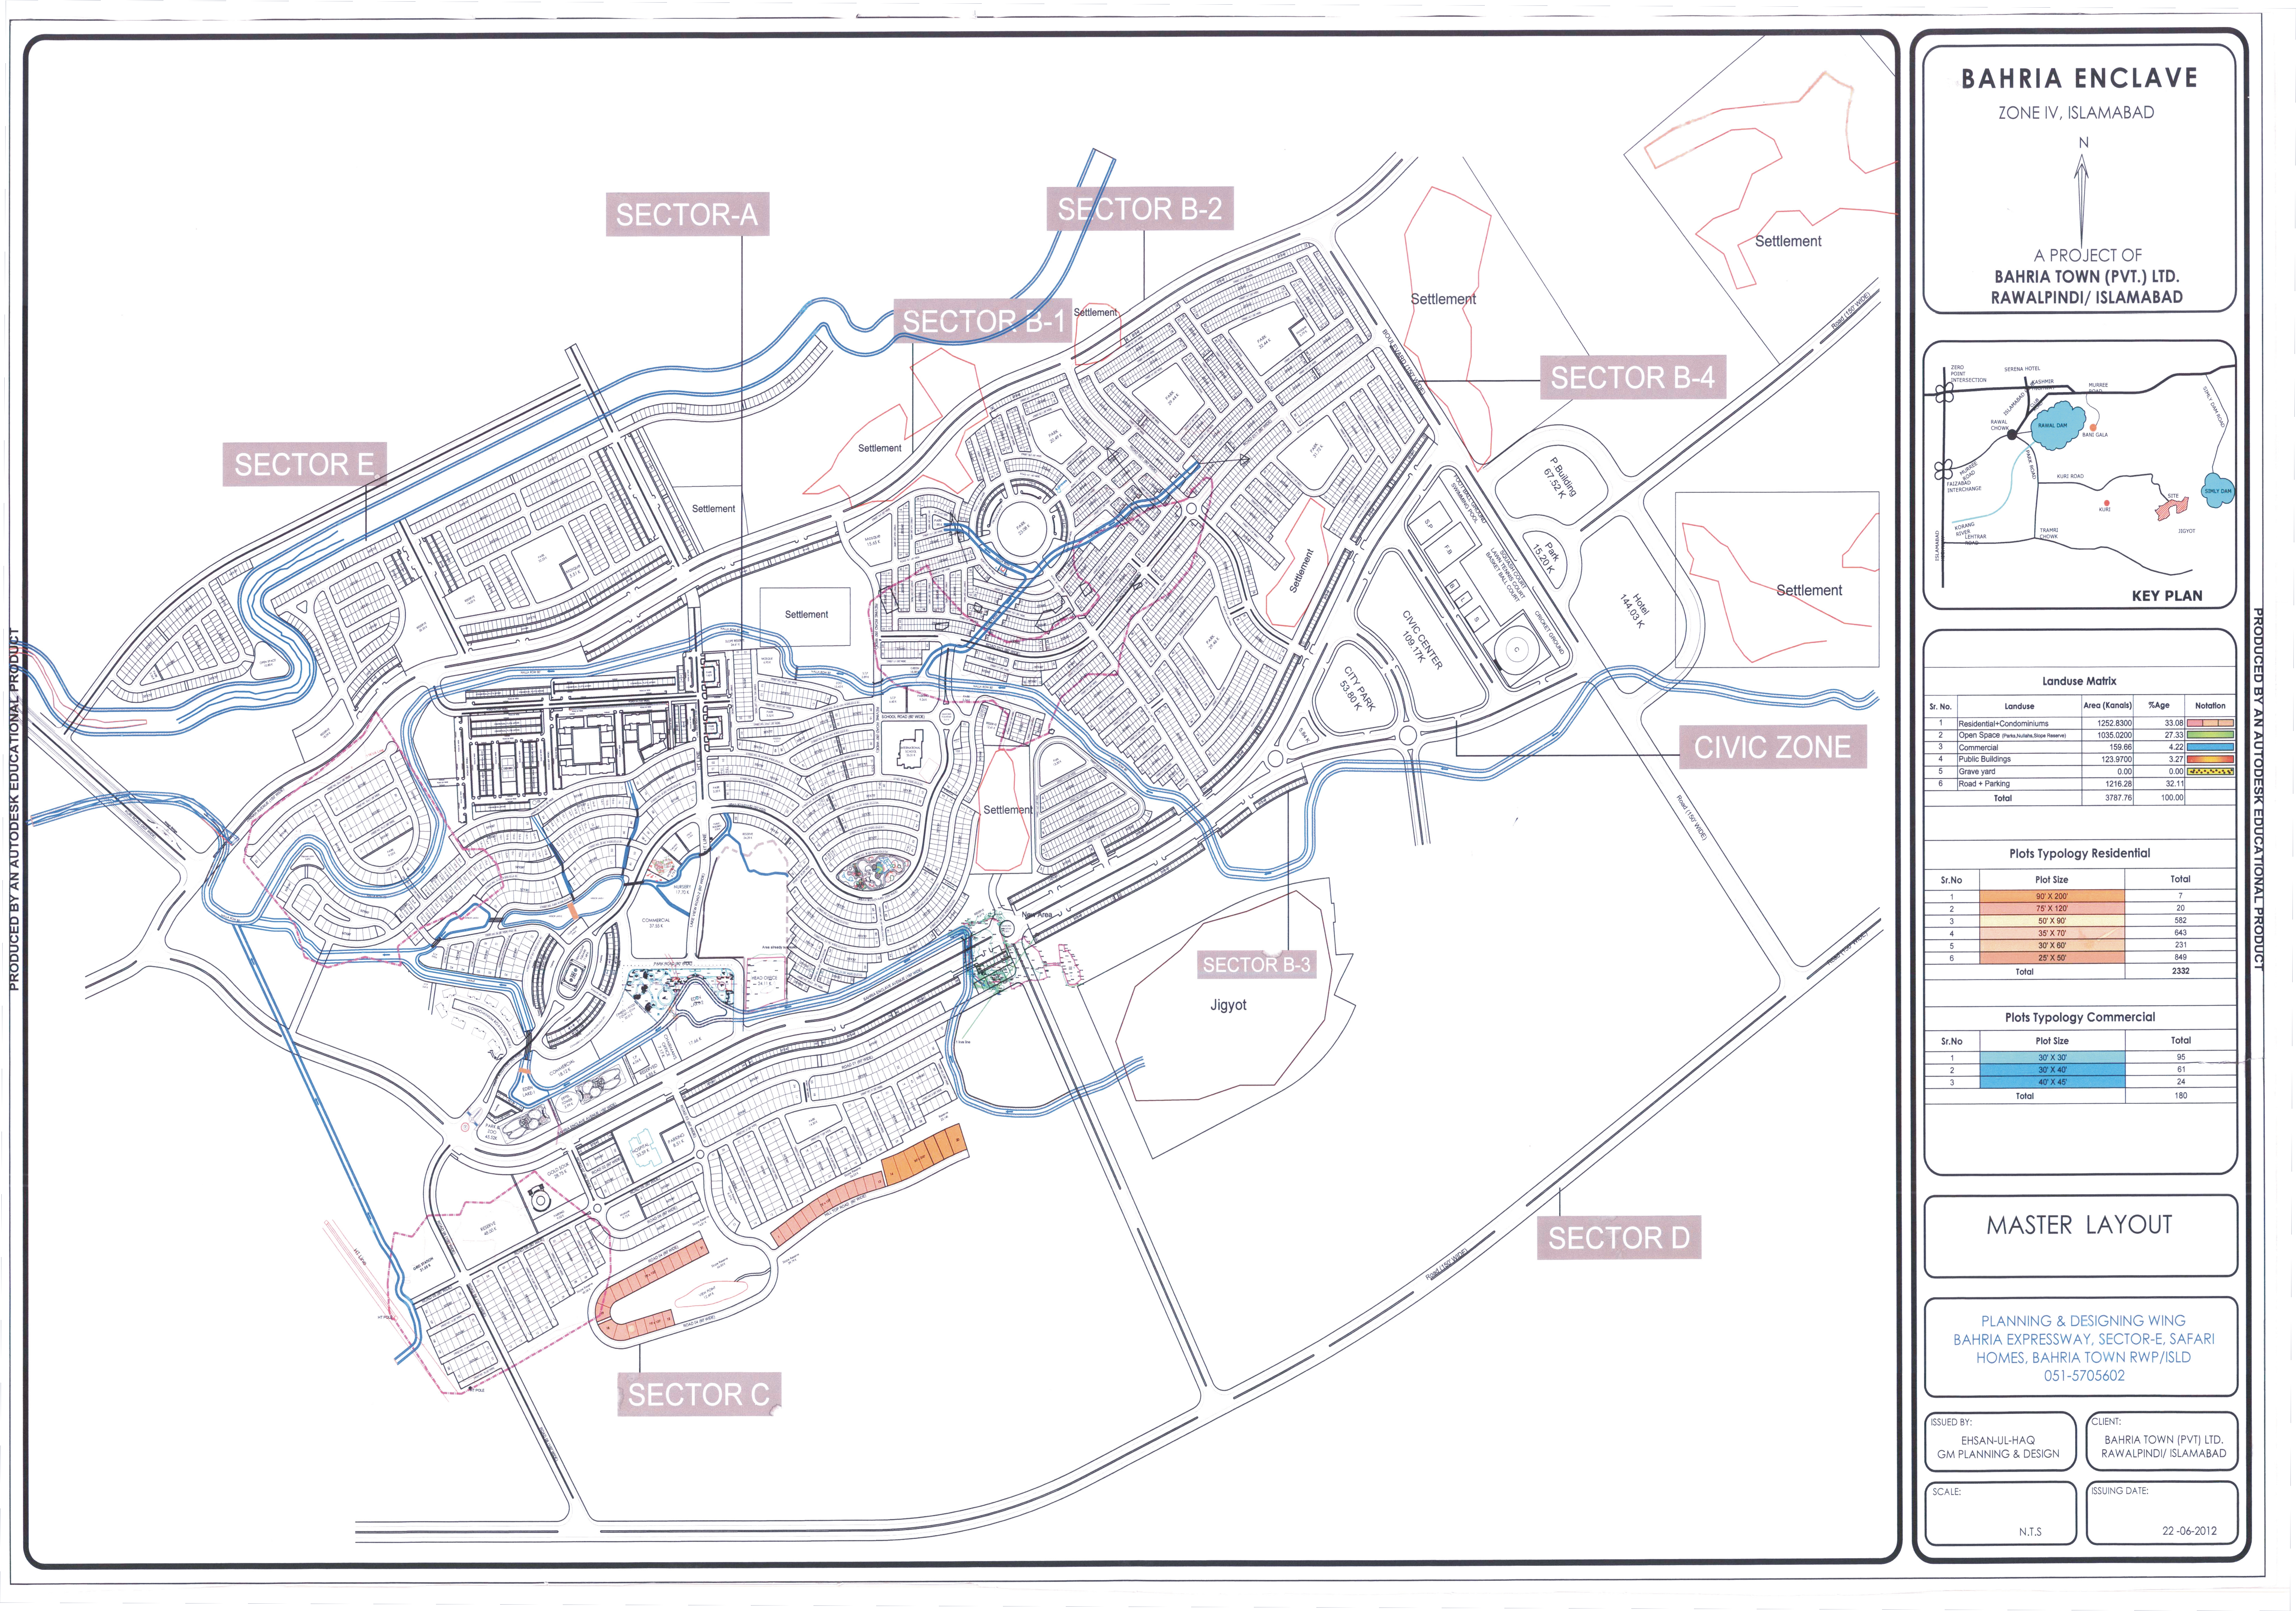 Bahria town maps free download